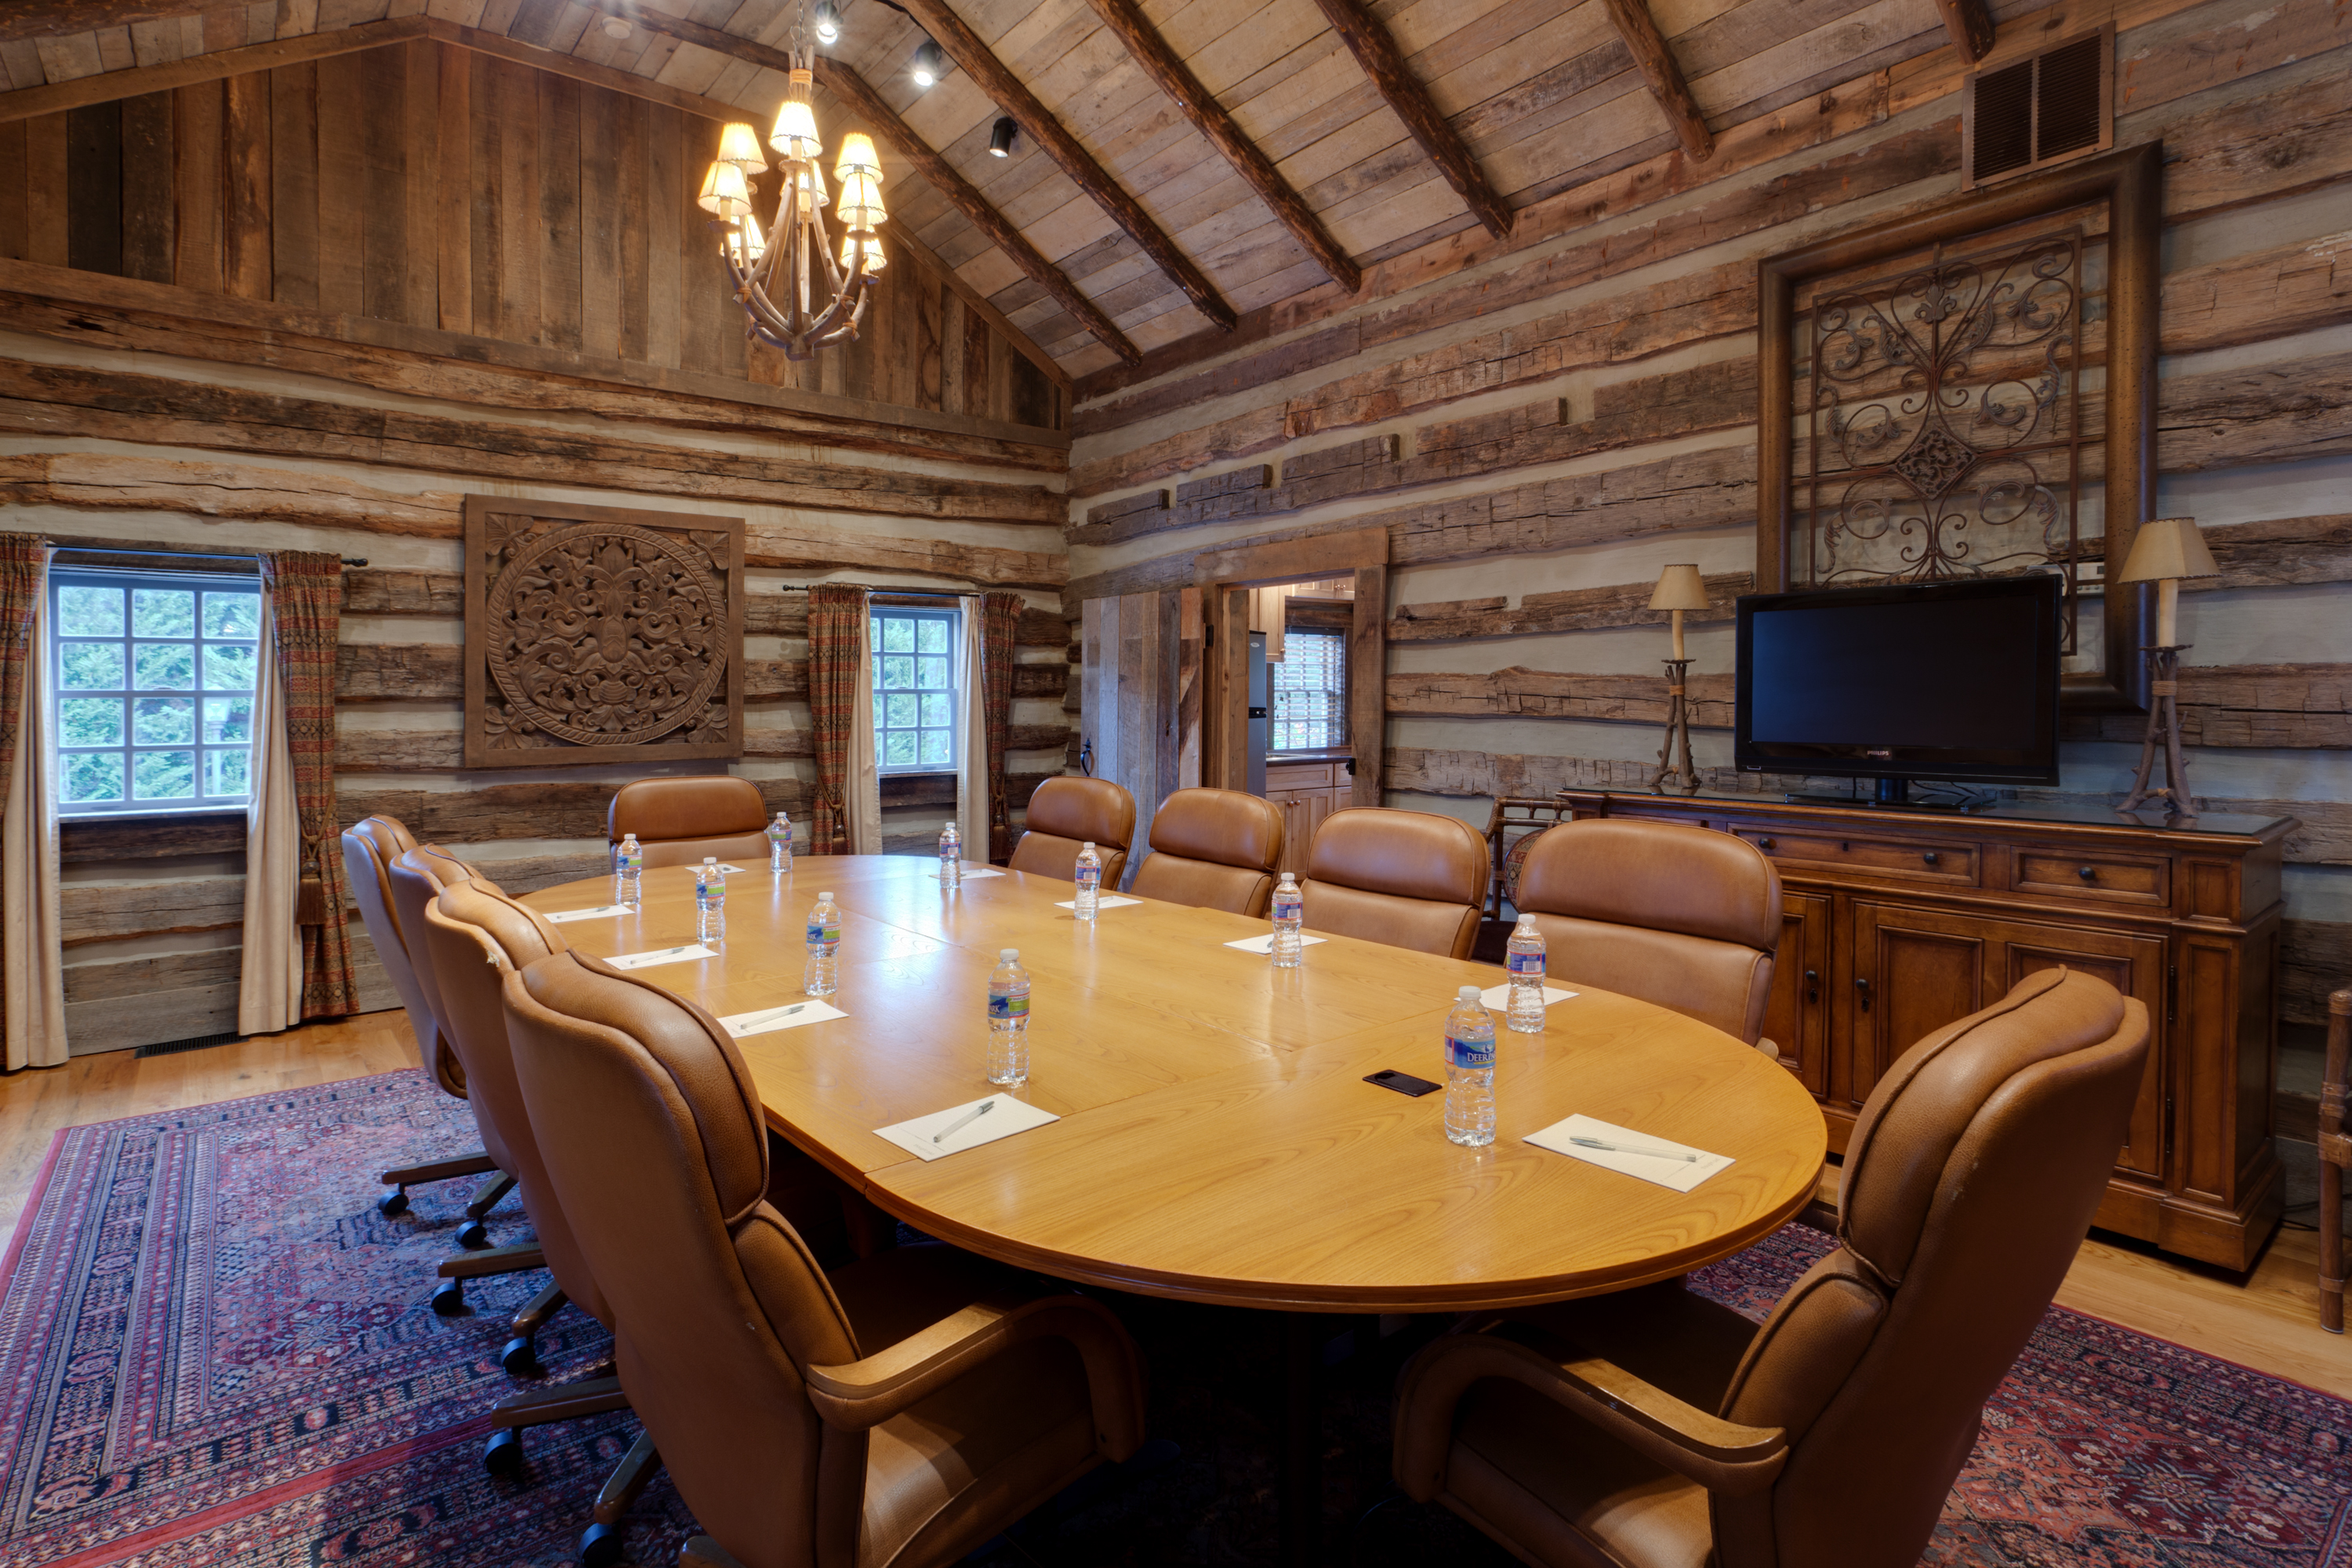 Contact heritage hospitality management for Cabin cabin vicino a lexington va